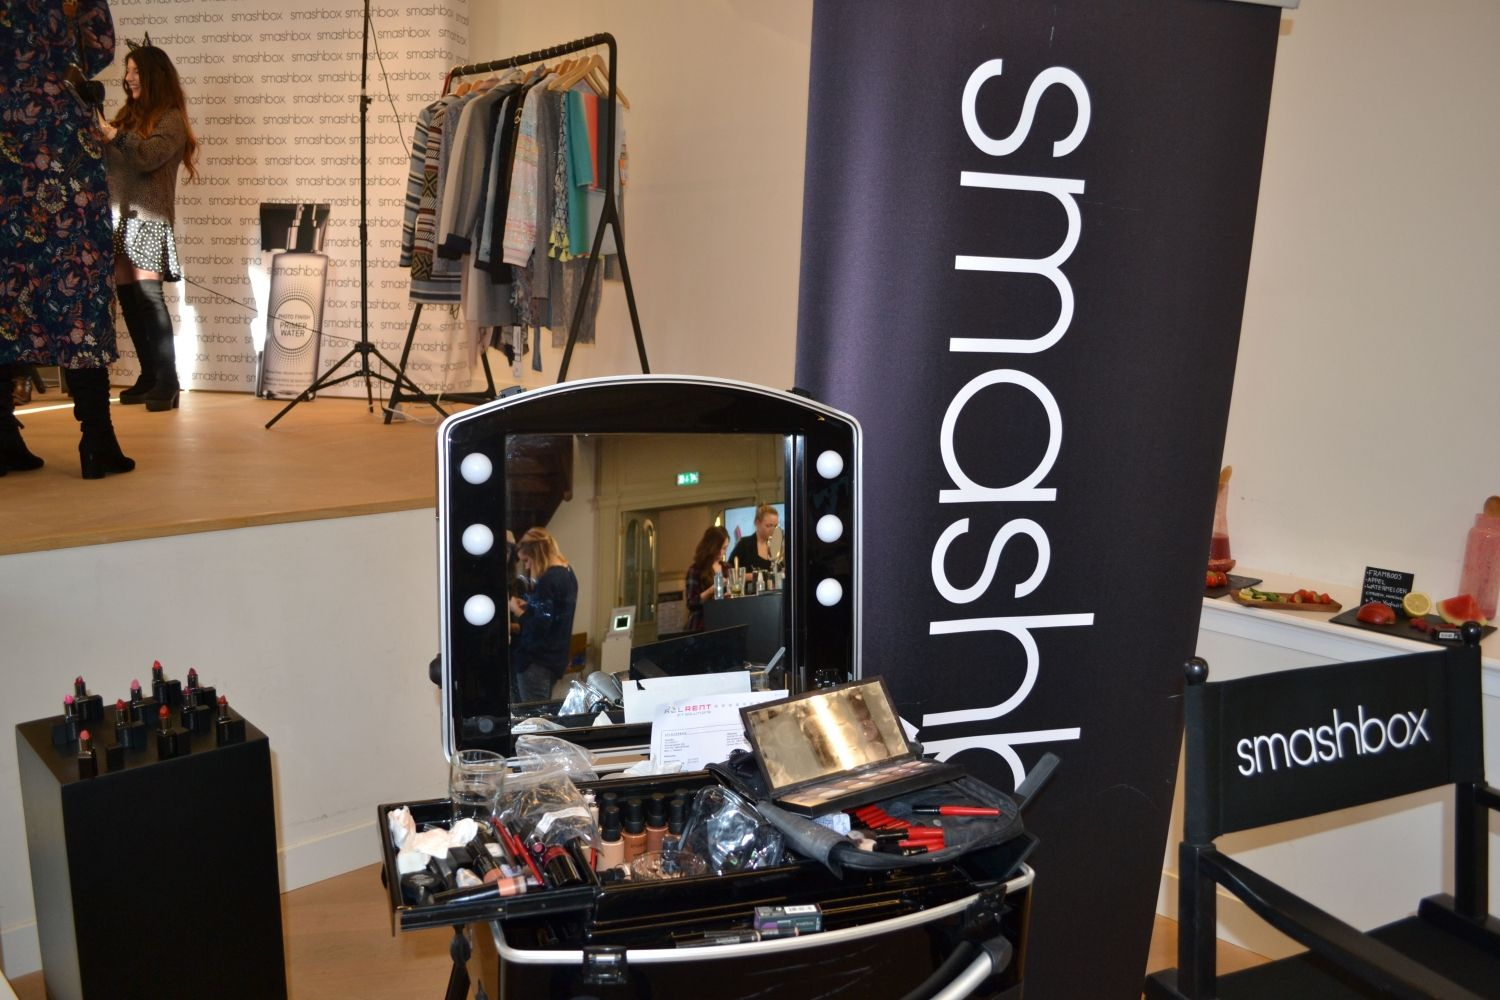 smashbox-influencers-makeup-event-benelux-5